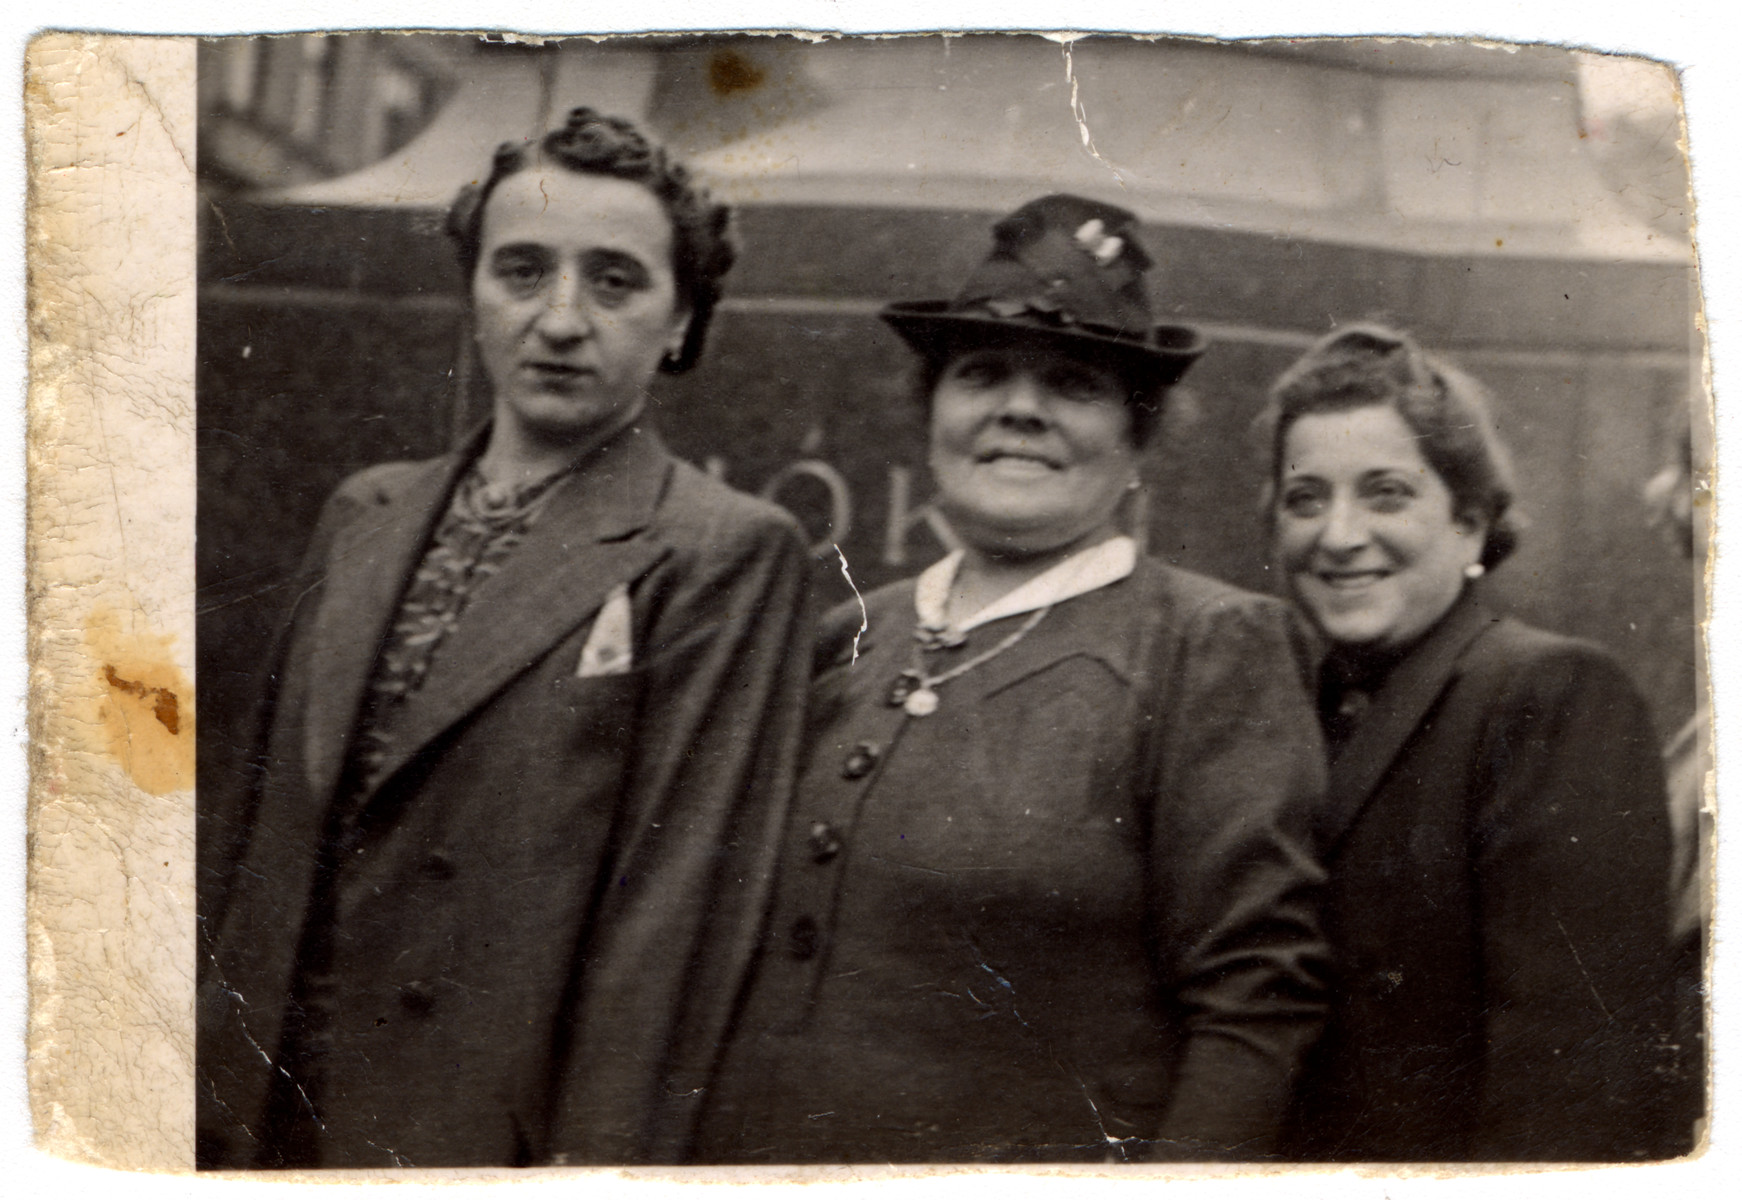 Close-up portrait of three Hungarian Jewish women.  Pictured are Katalin Biel (mother of the donor), her mother-in-law Carlyn Biel and sister-in-law Maria Biel.